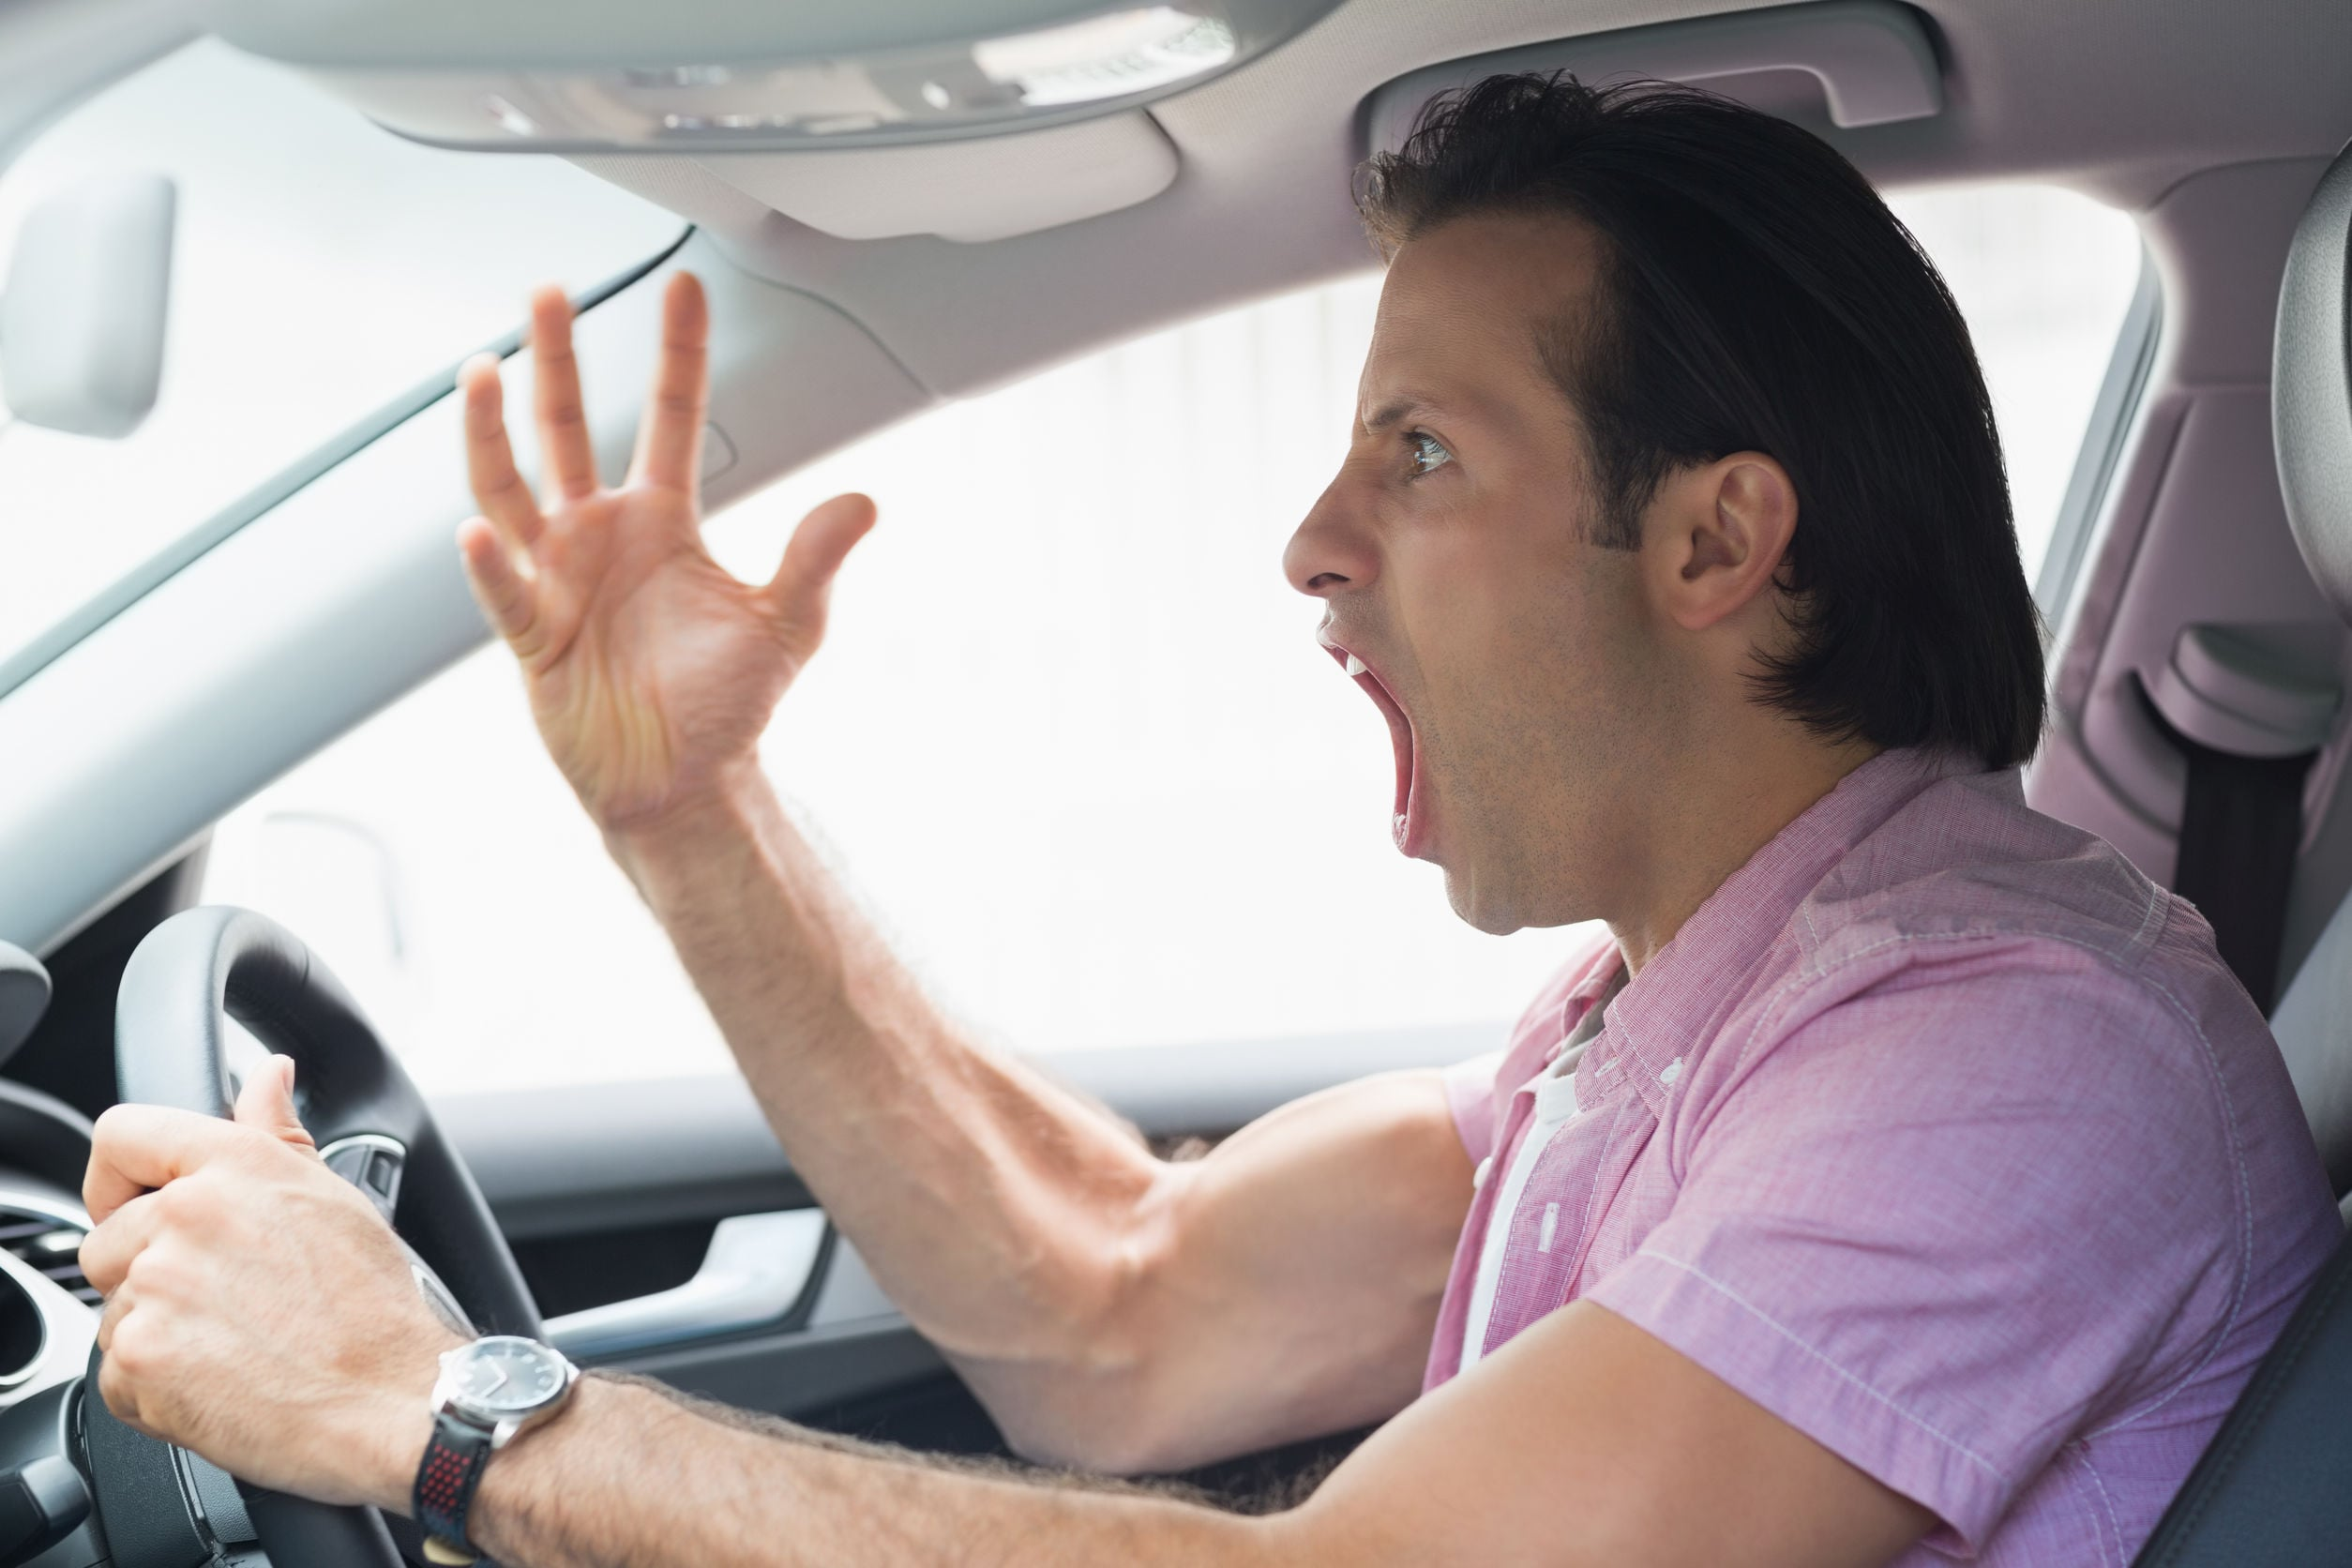 FL Has Most Road Rage Cases in US – How to Handle a Raging Driver